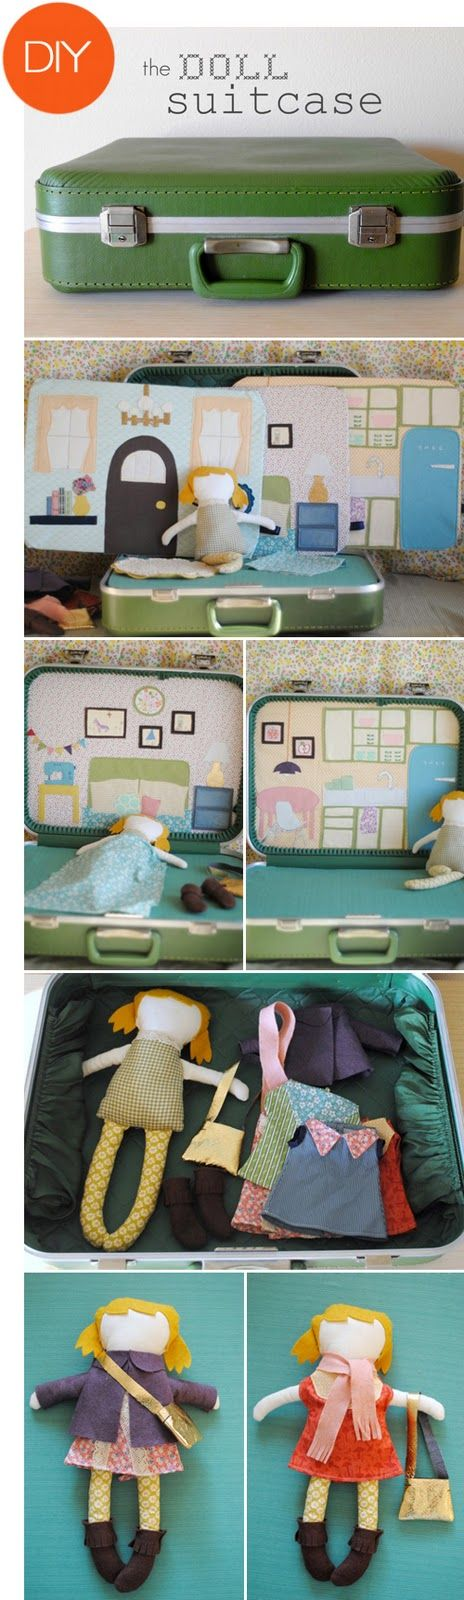 DIY doll suitcase.